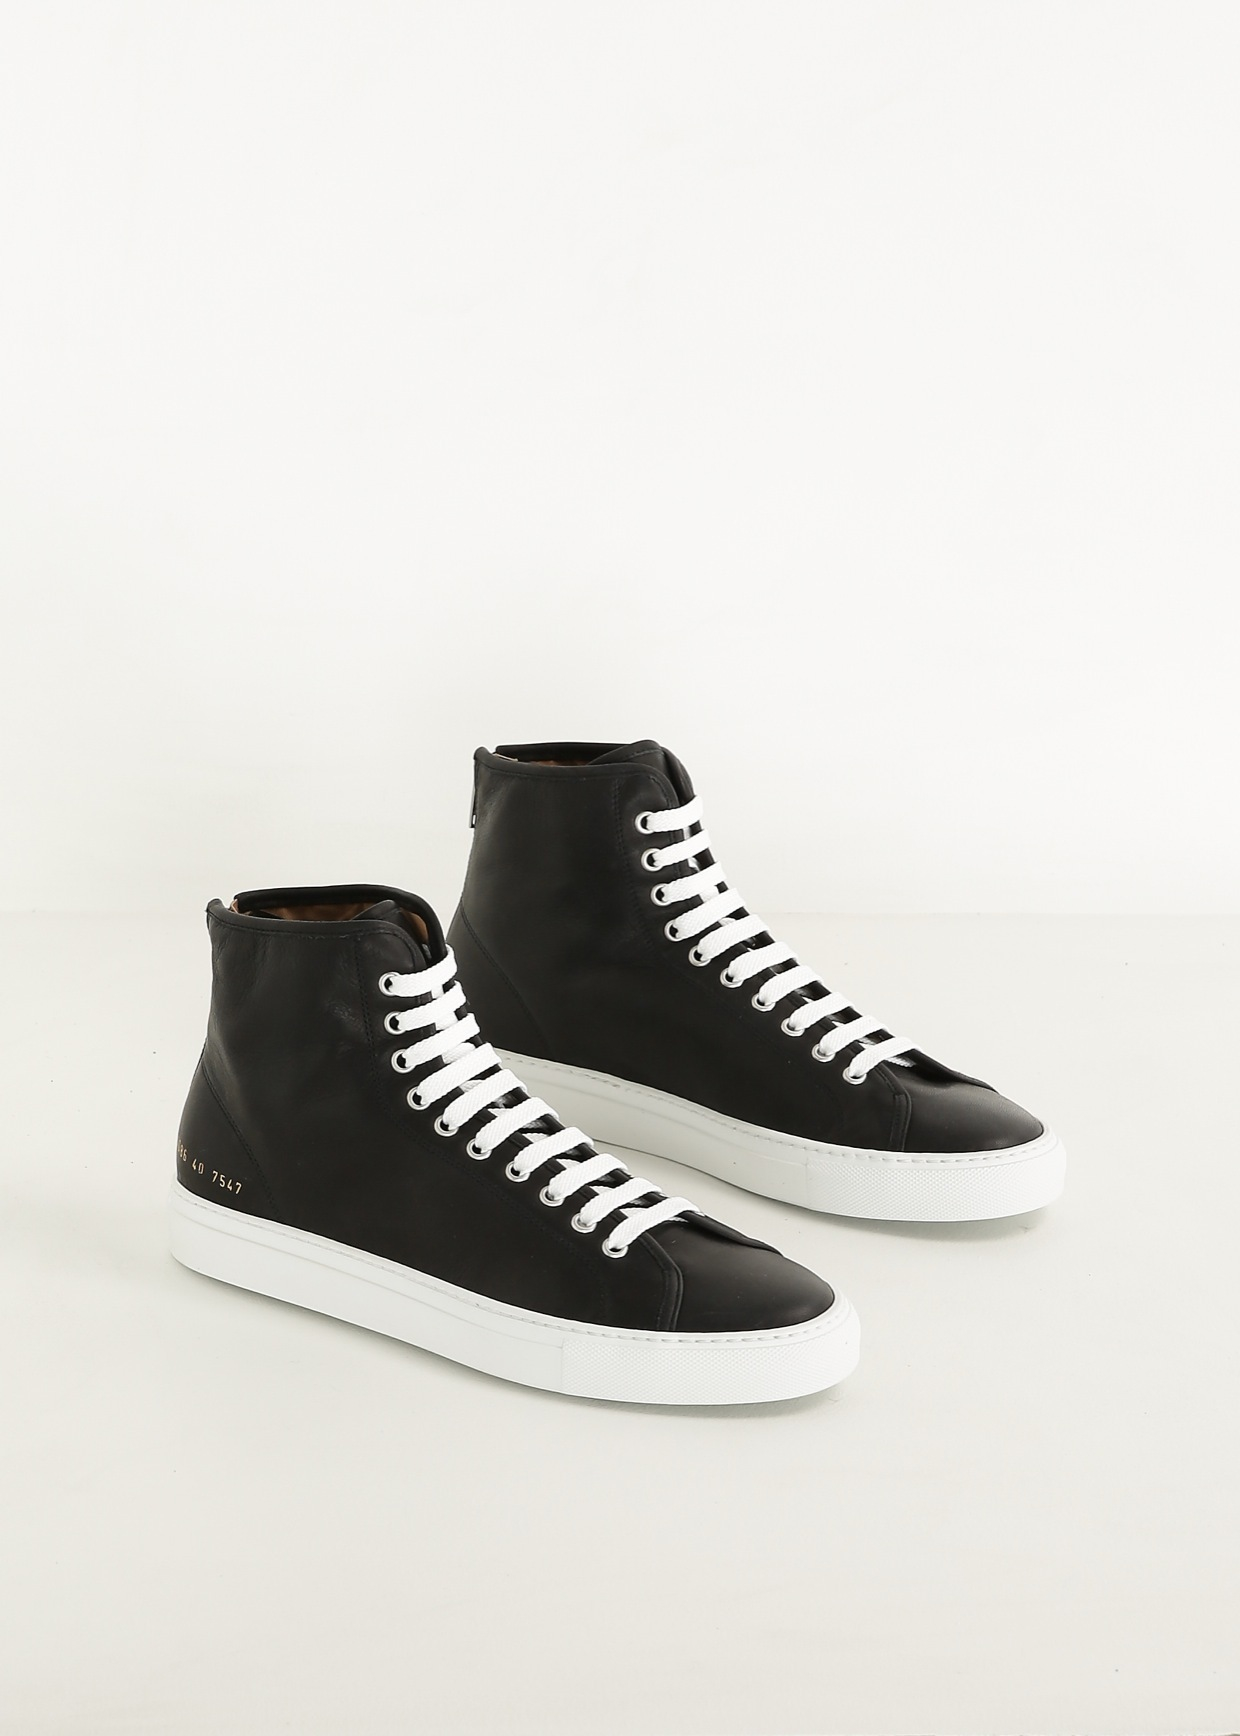 common projects tournament leather high top sneakers in black lyst. Black Bedroom Furniture Sets. Home Design Ideas